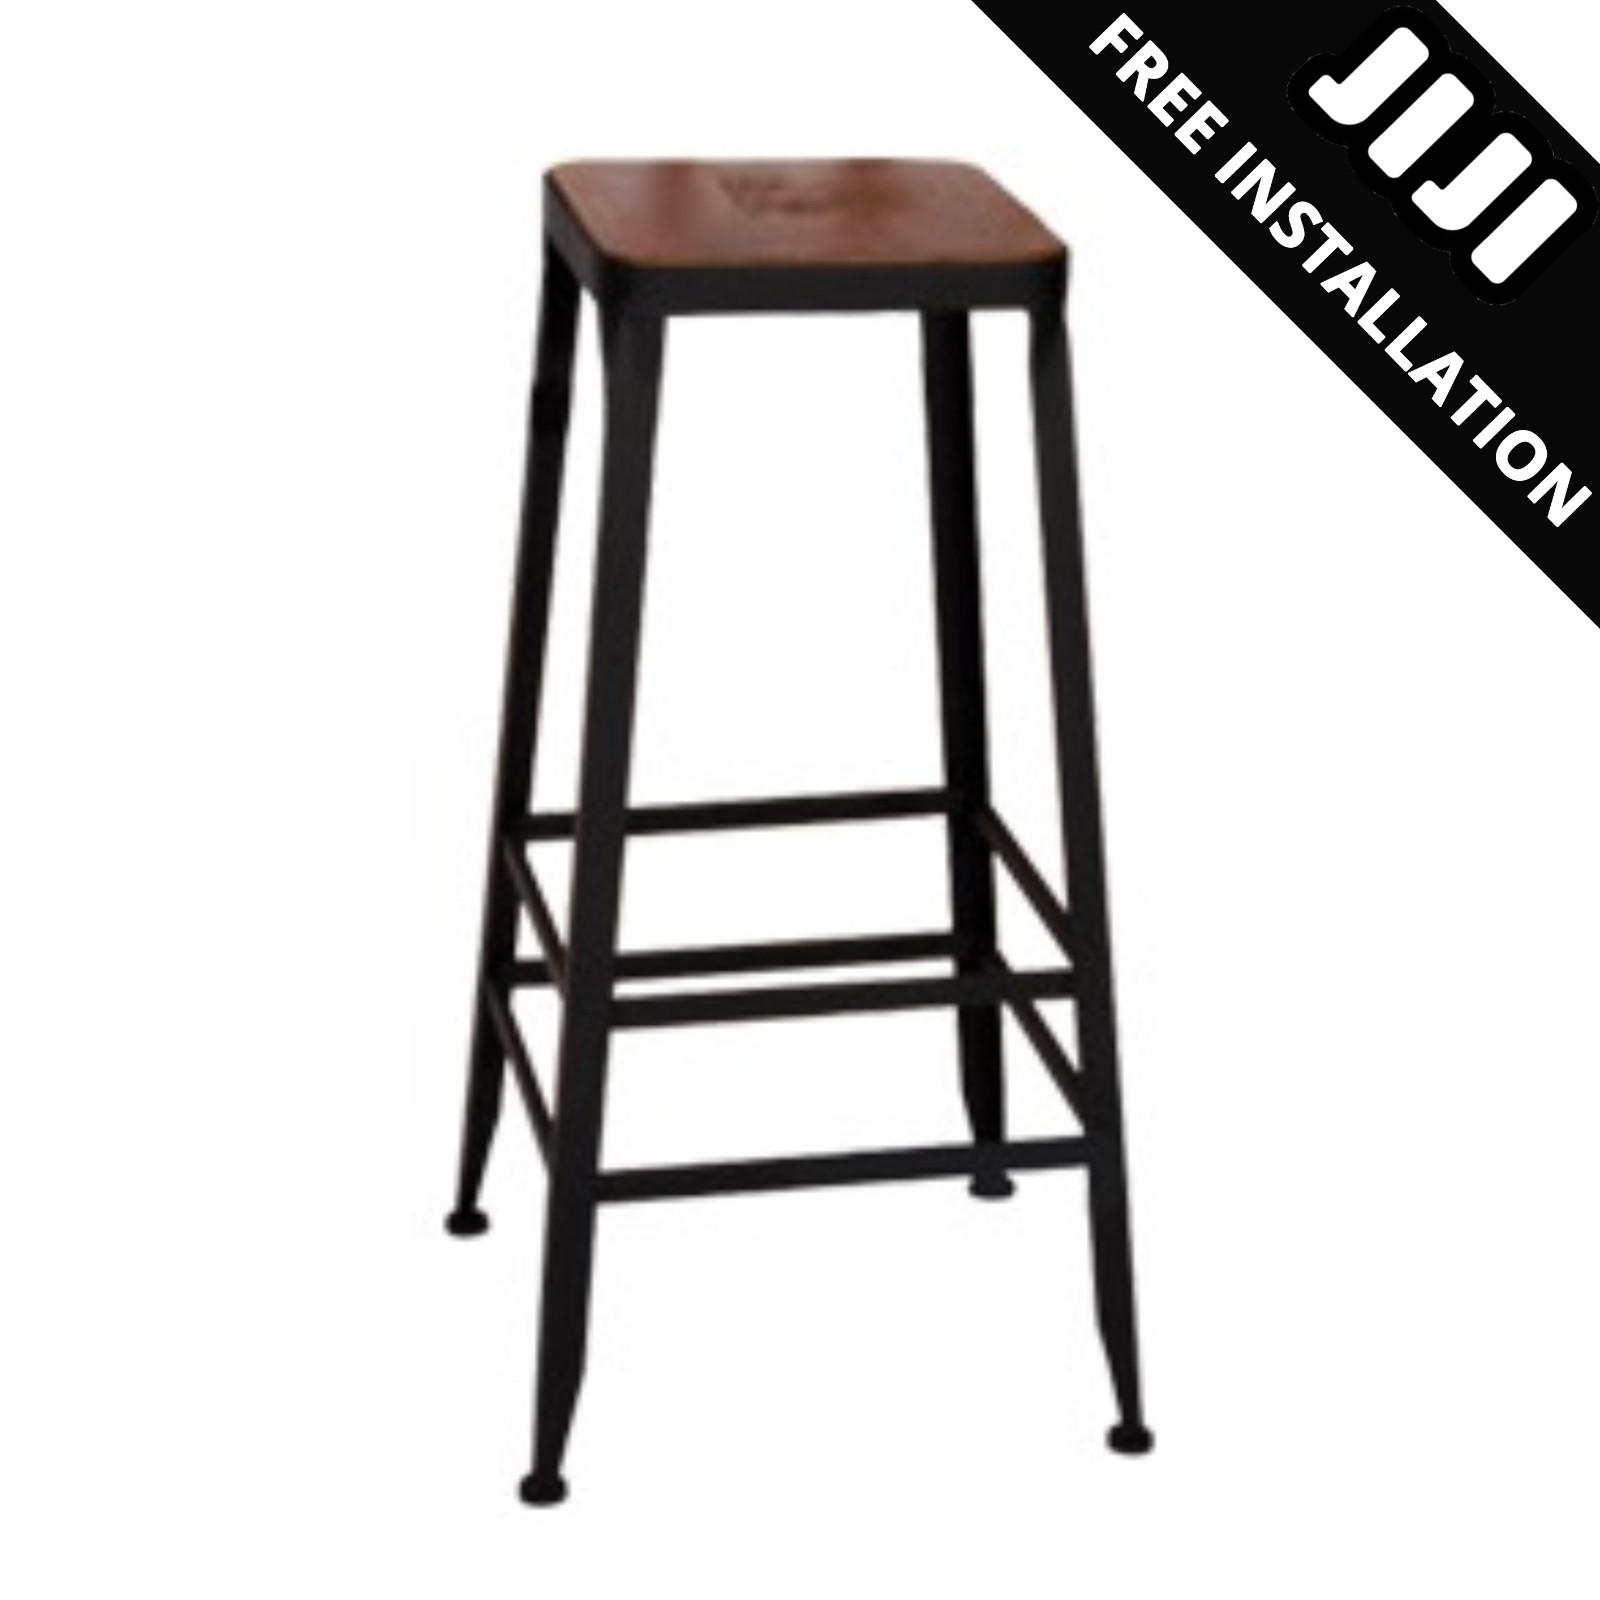 JIJI RETRO High Bar Stools (Free Installation) - Chairs / Dining Furniture / High Chairs (SG)